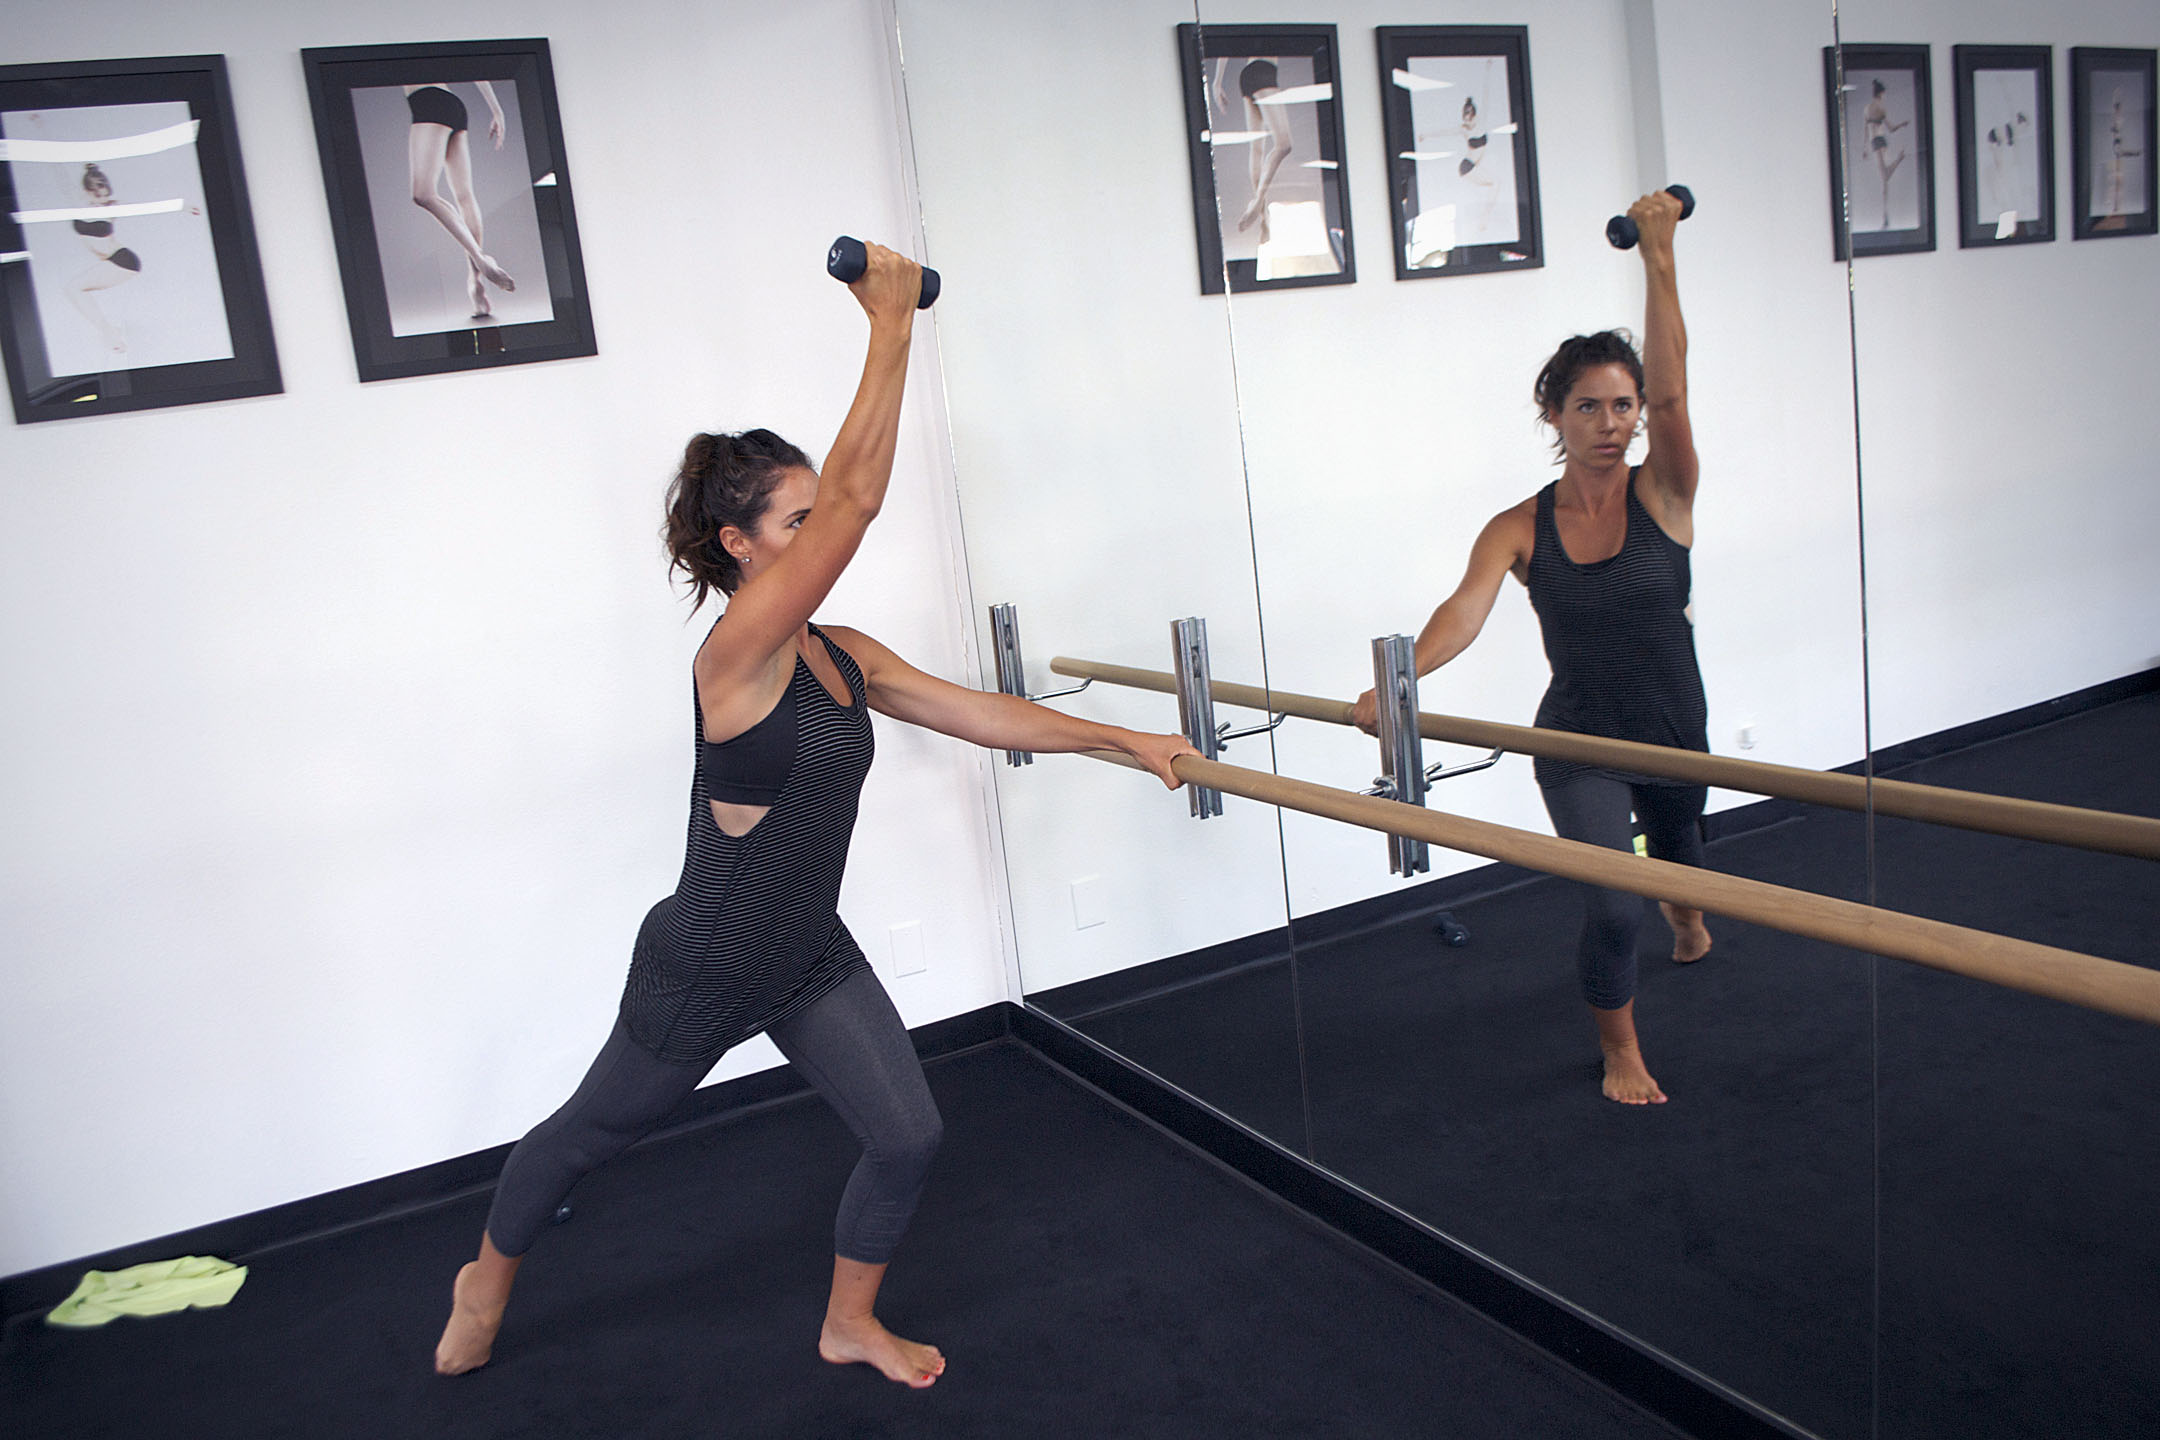 cardio barre exercise